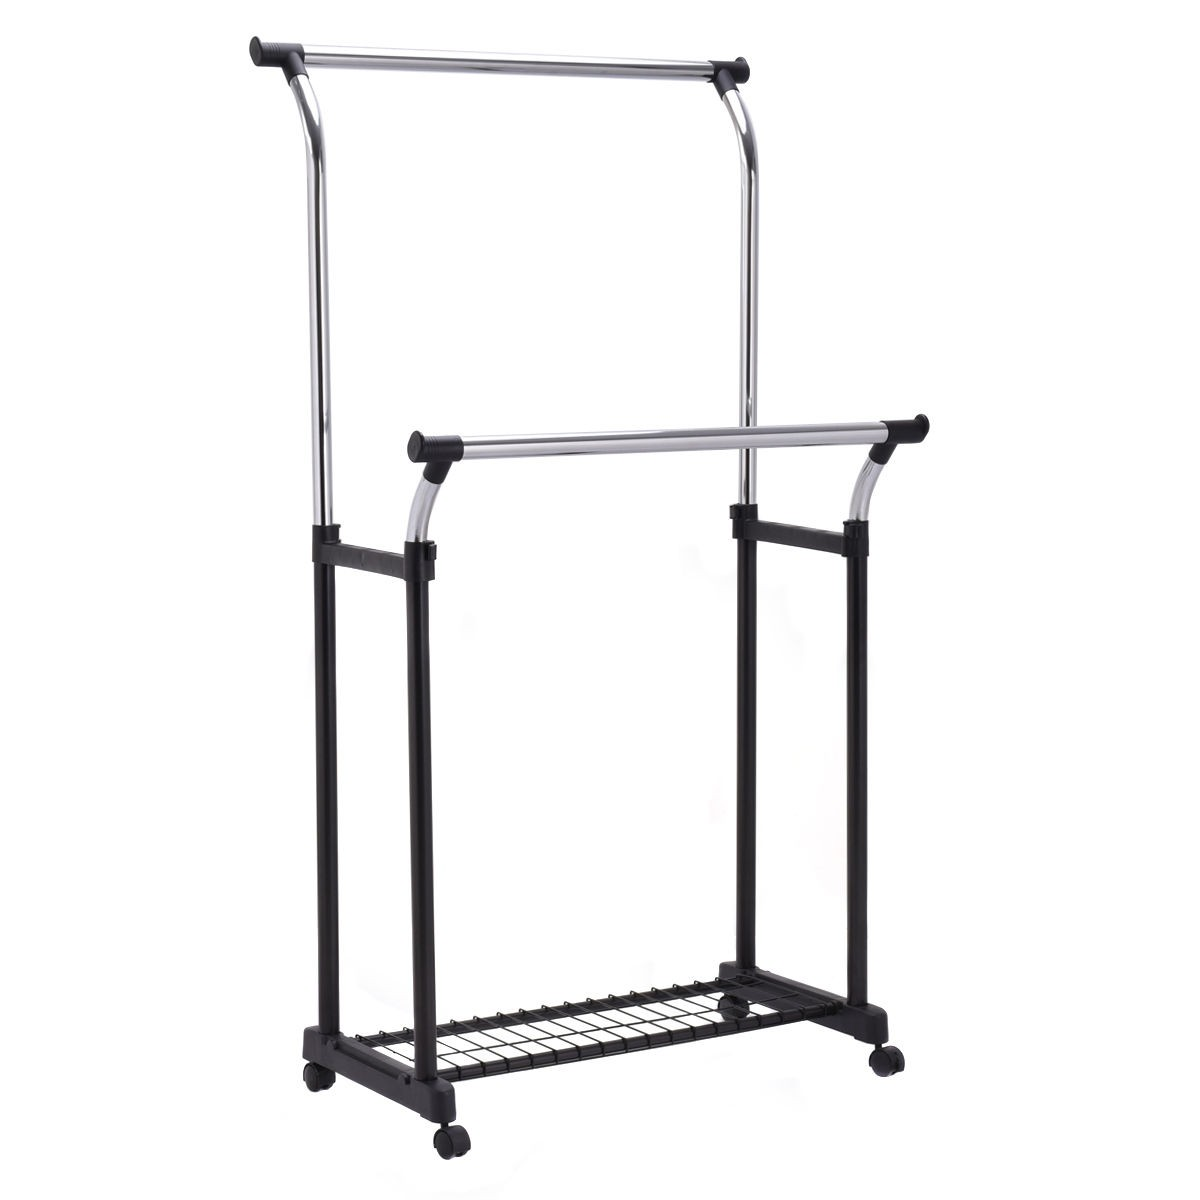 Adjule Double Rail Garment Rack Portable Rolling Clothes Hanger